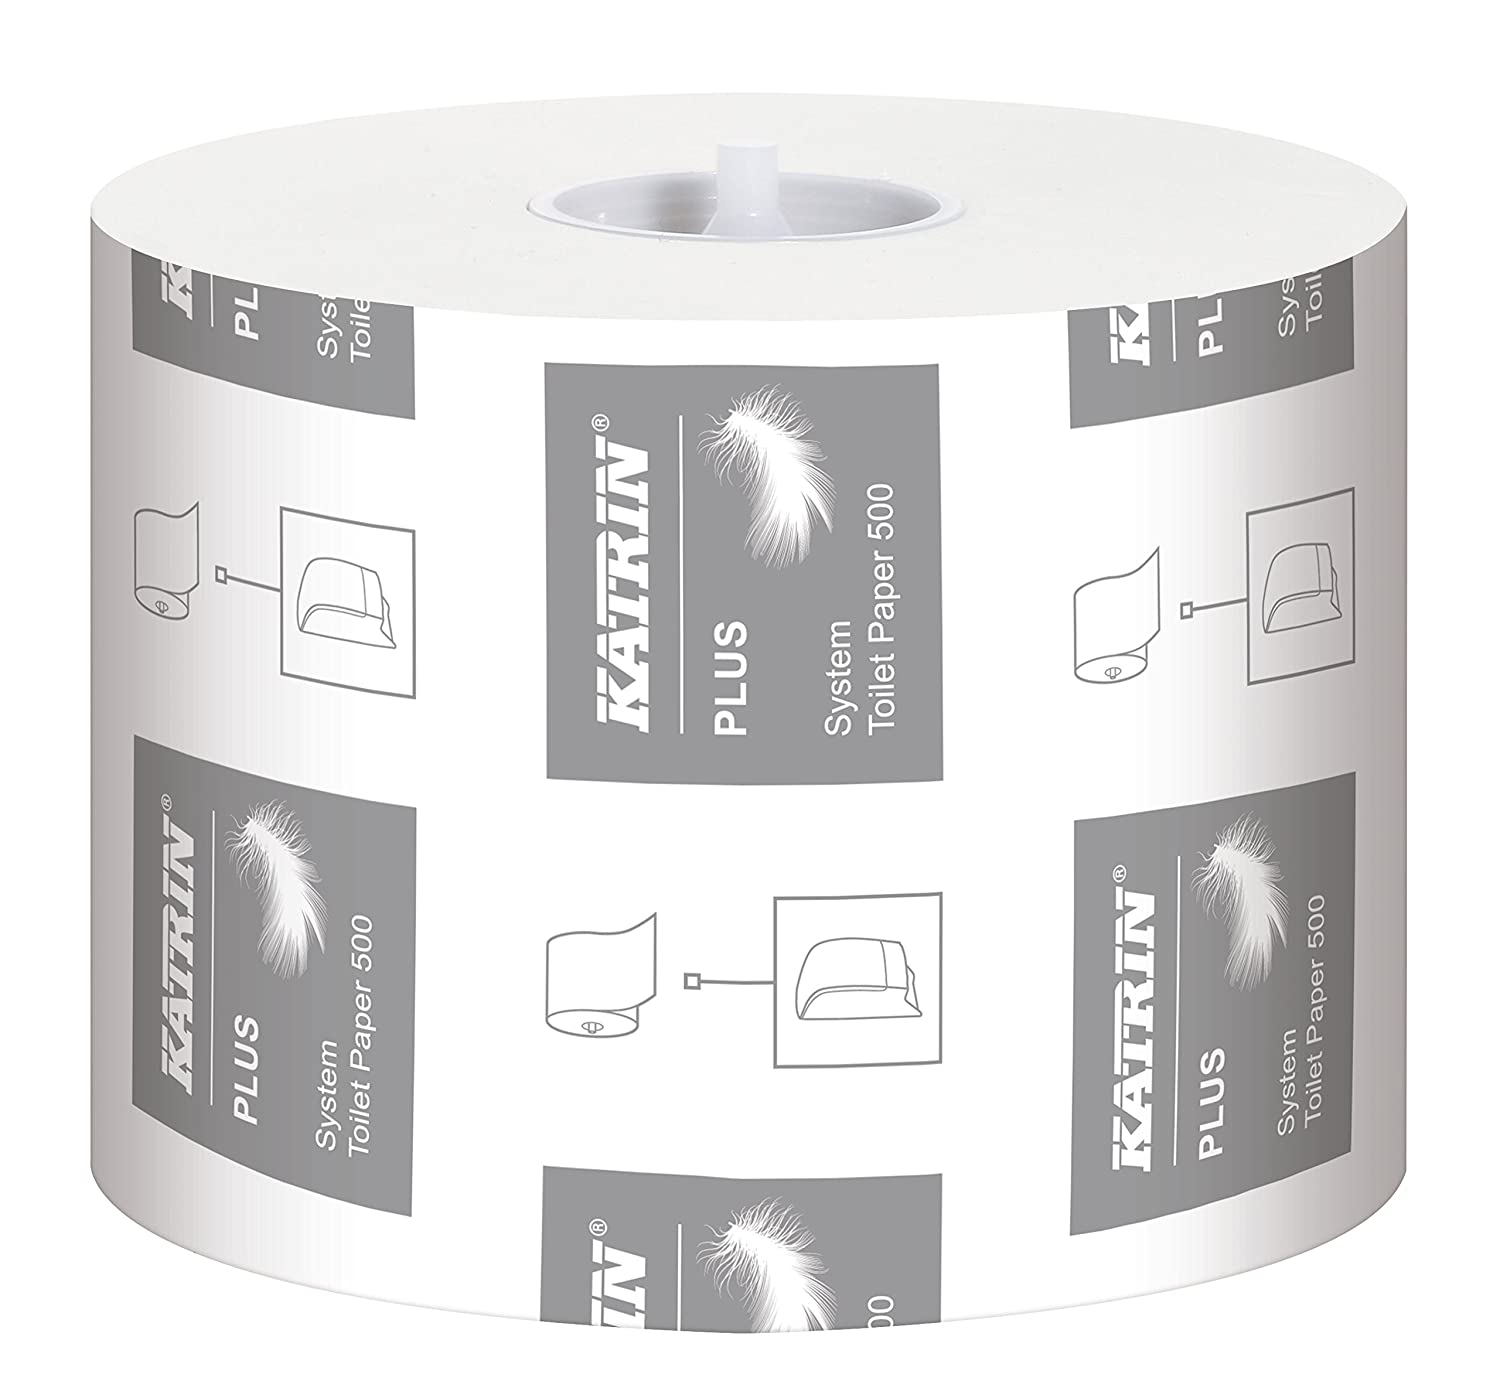 Lucart Professional 811597 Toilet Paper Rolls Eco 400 Pack of 30